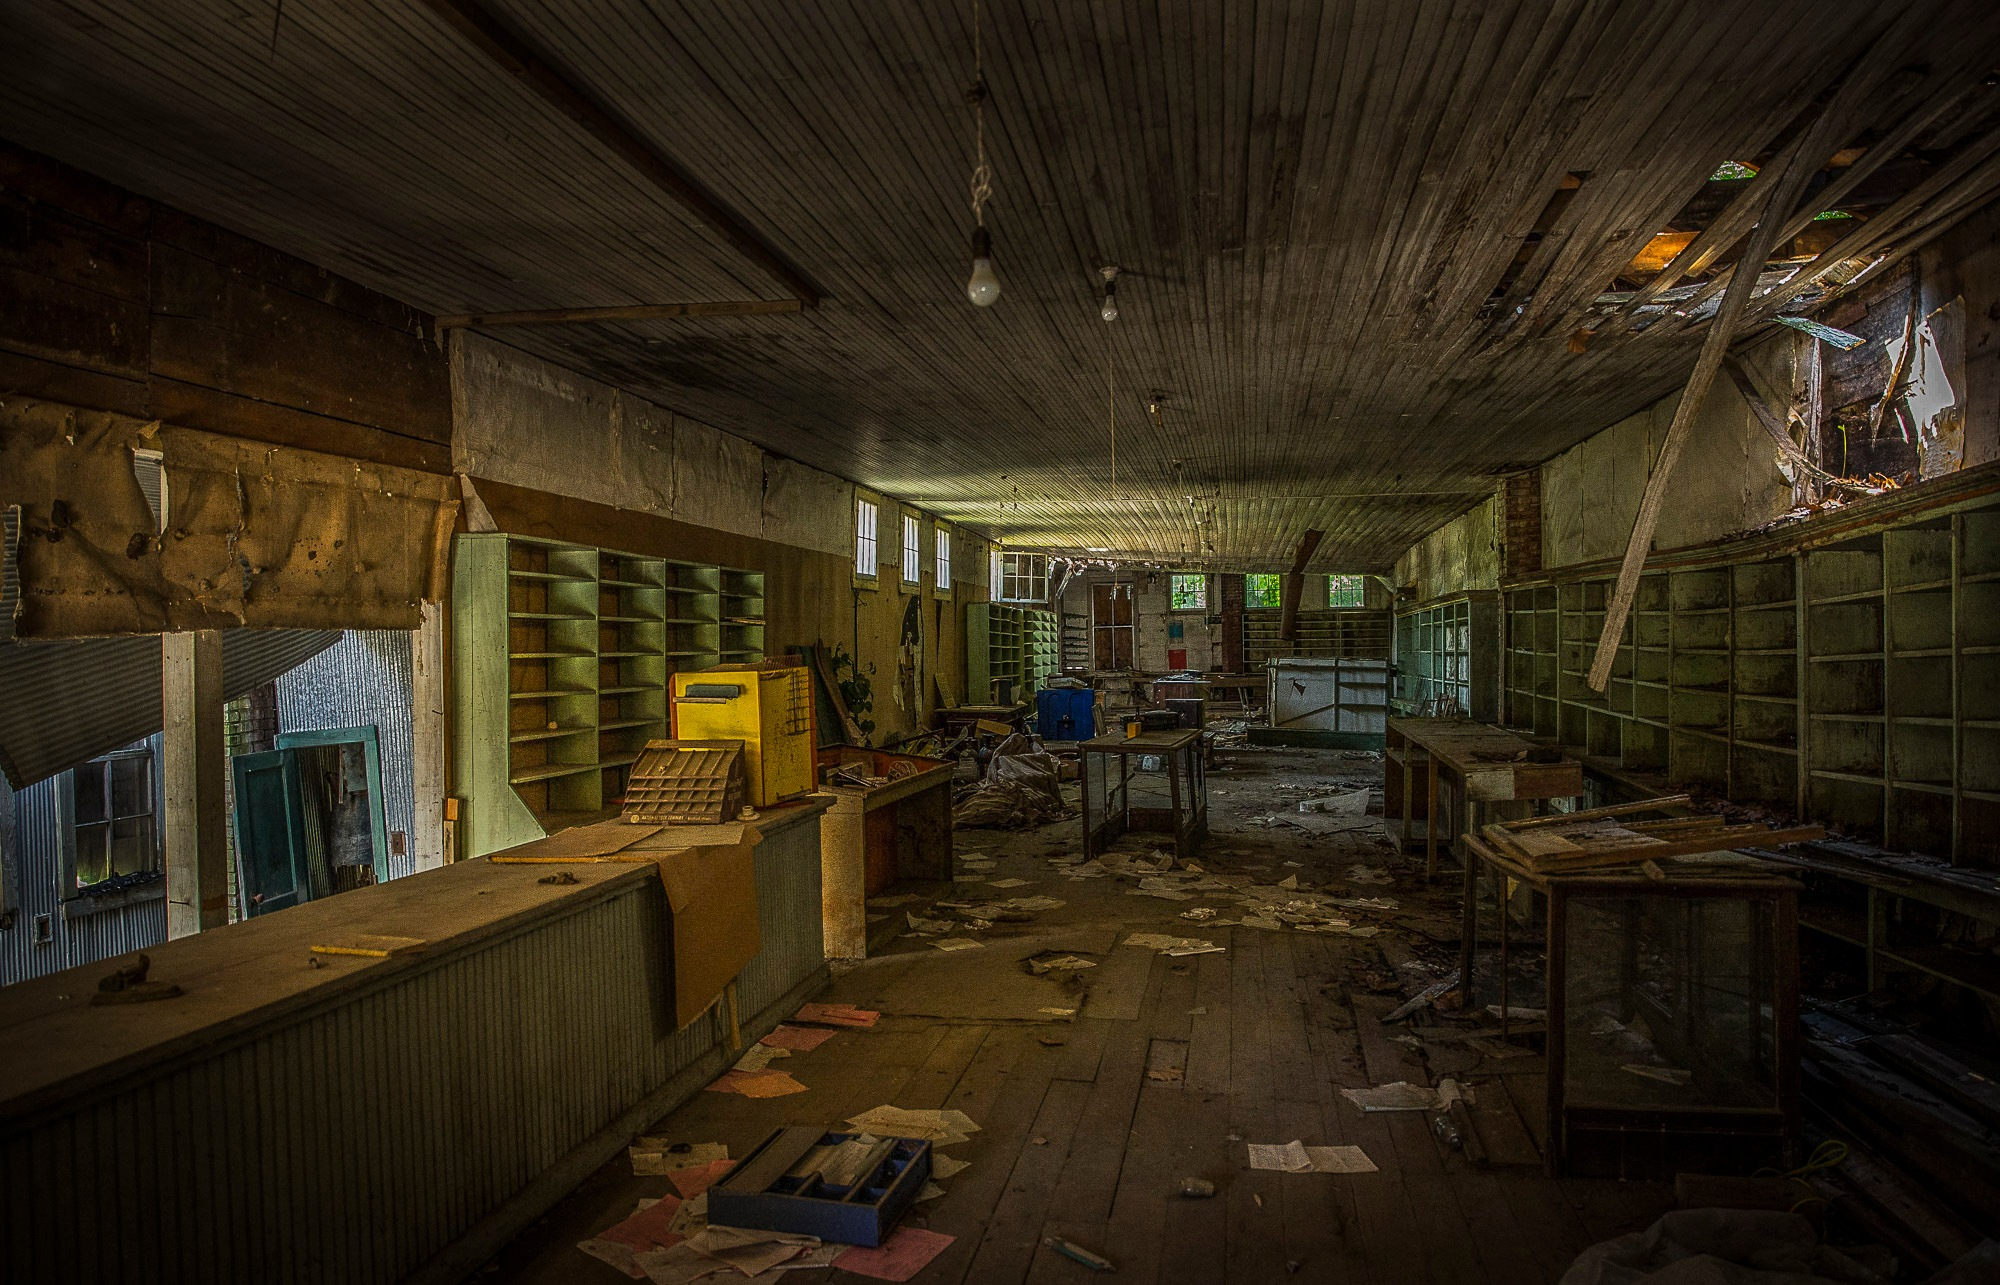 The Old Country Store by Razorsharp